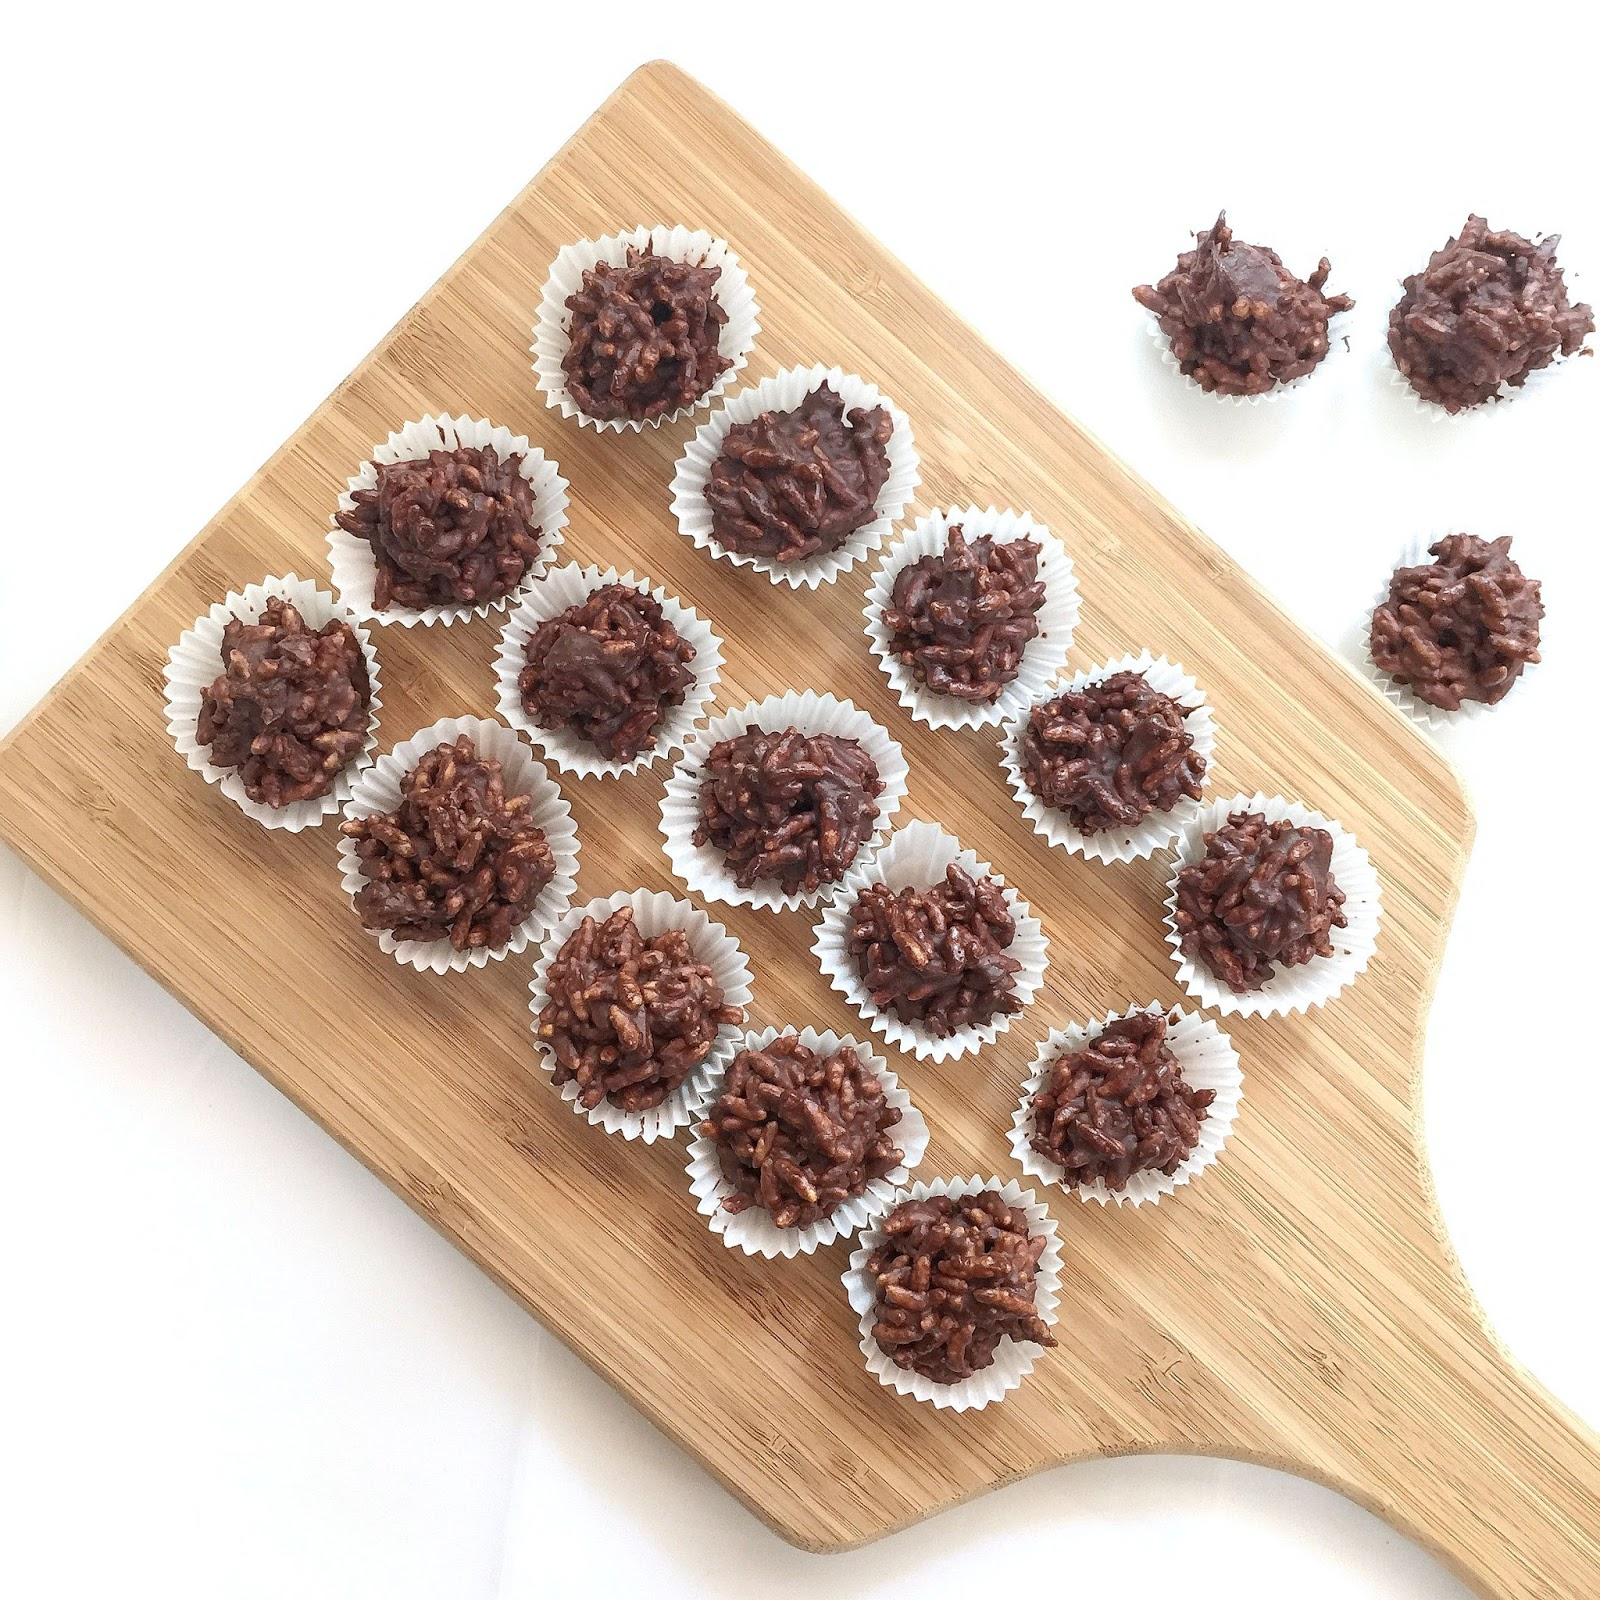 Chocolate Speculoos Crispies – a decadent treat